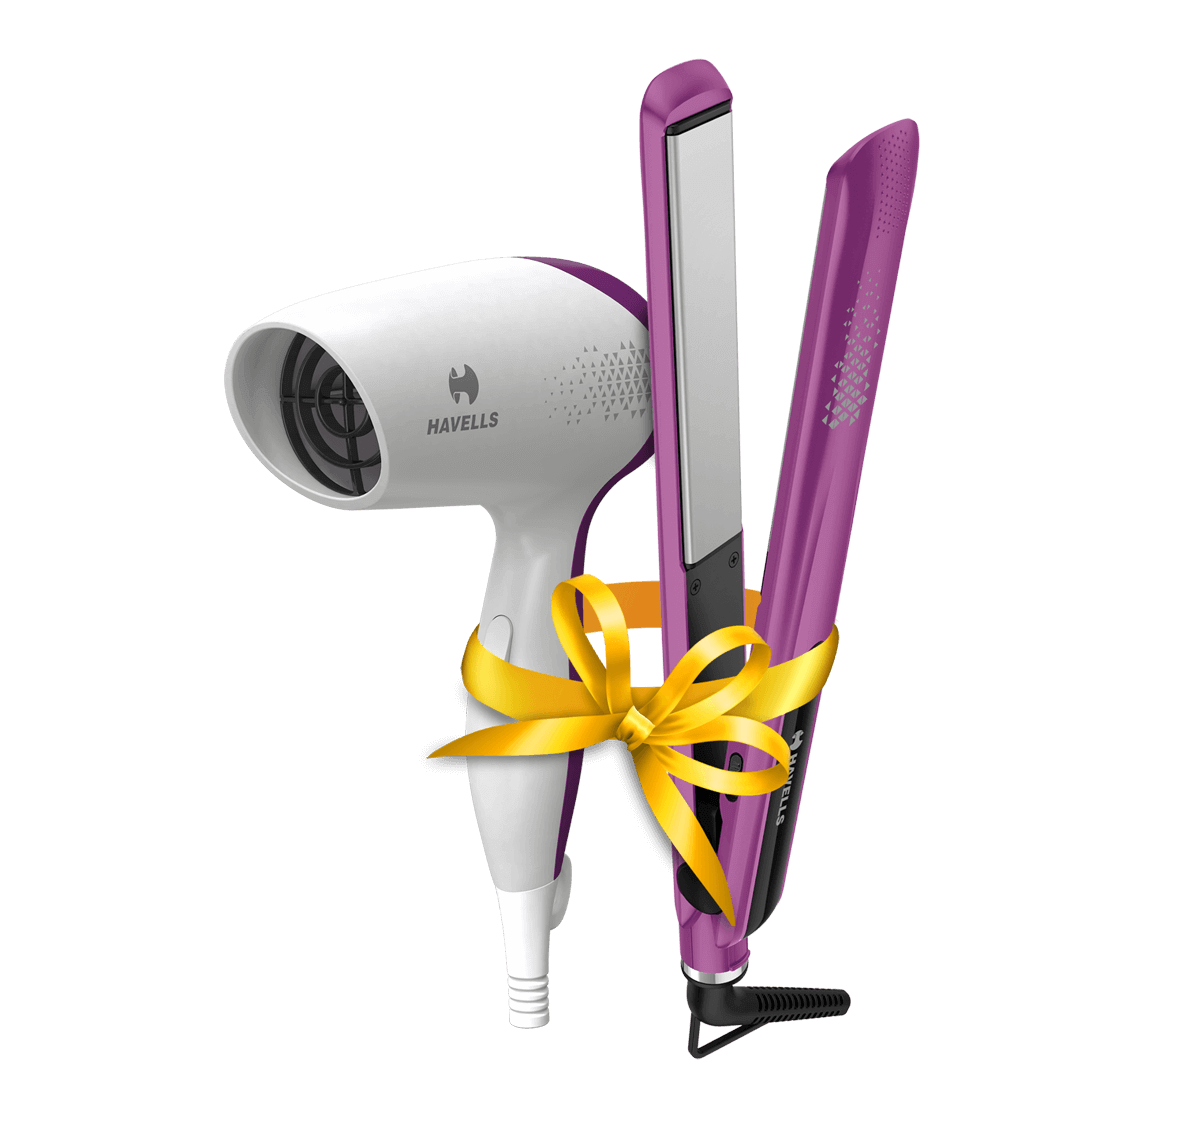 HC4025 - Limited Edition Styling Pack Combo (Dryer + Straightener)